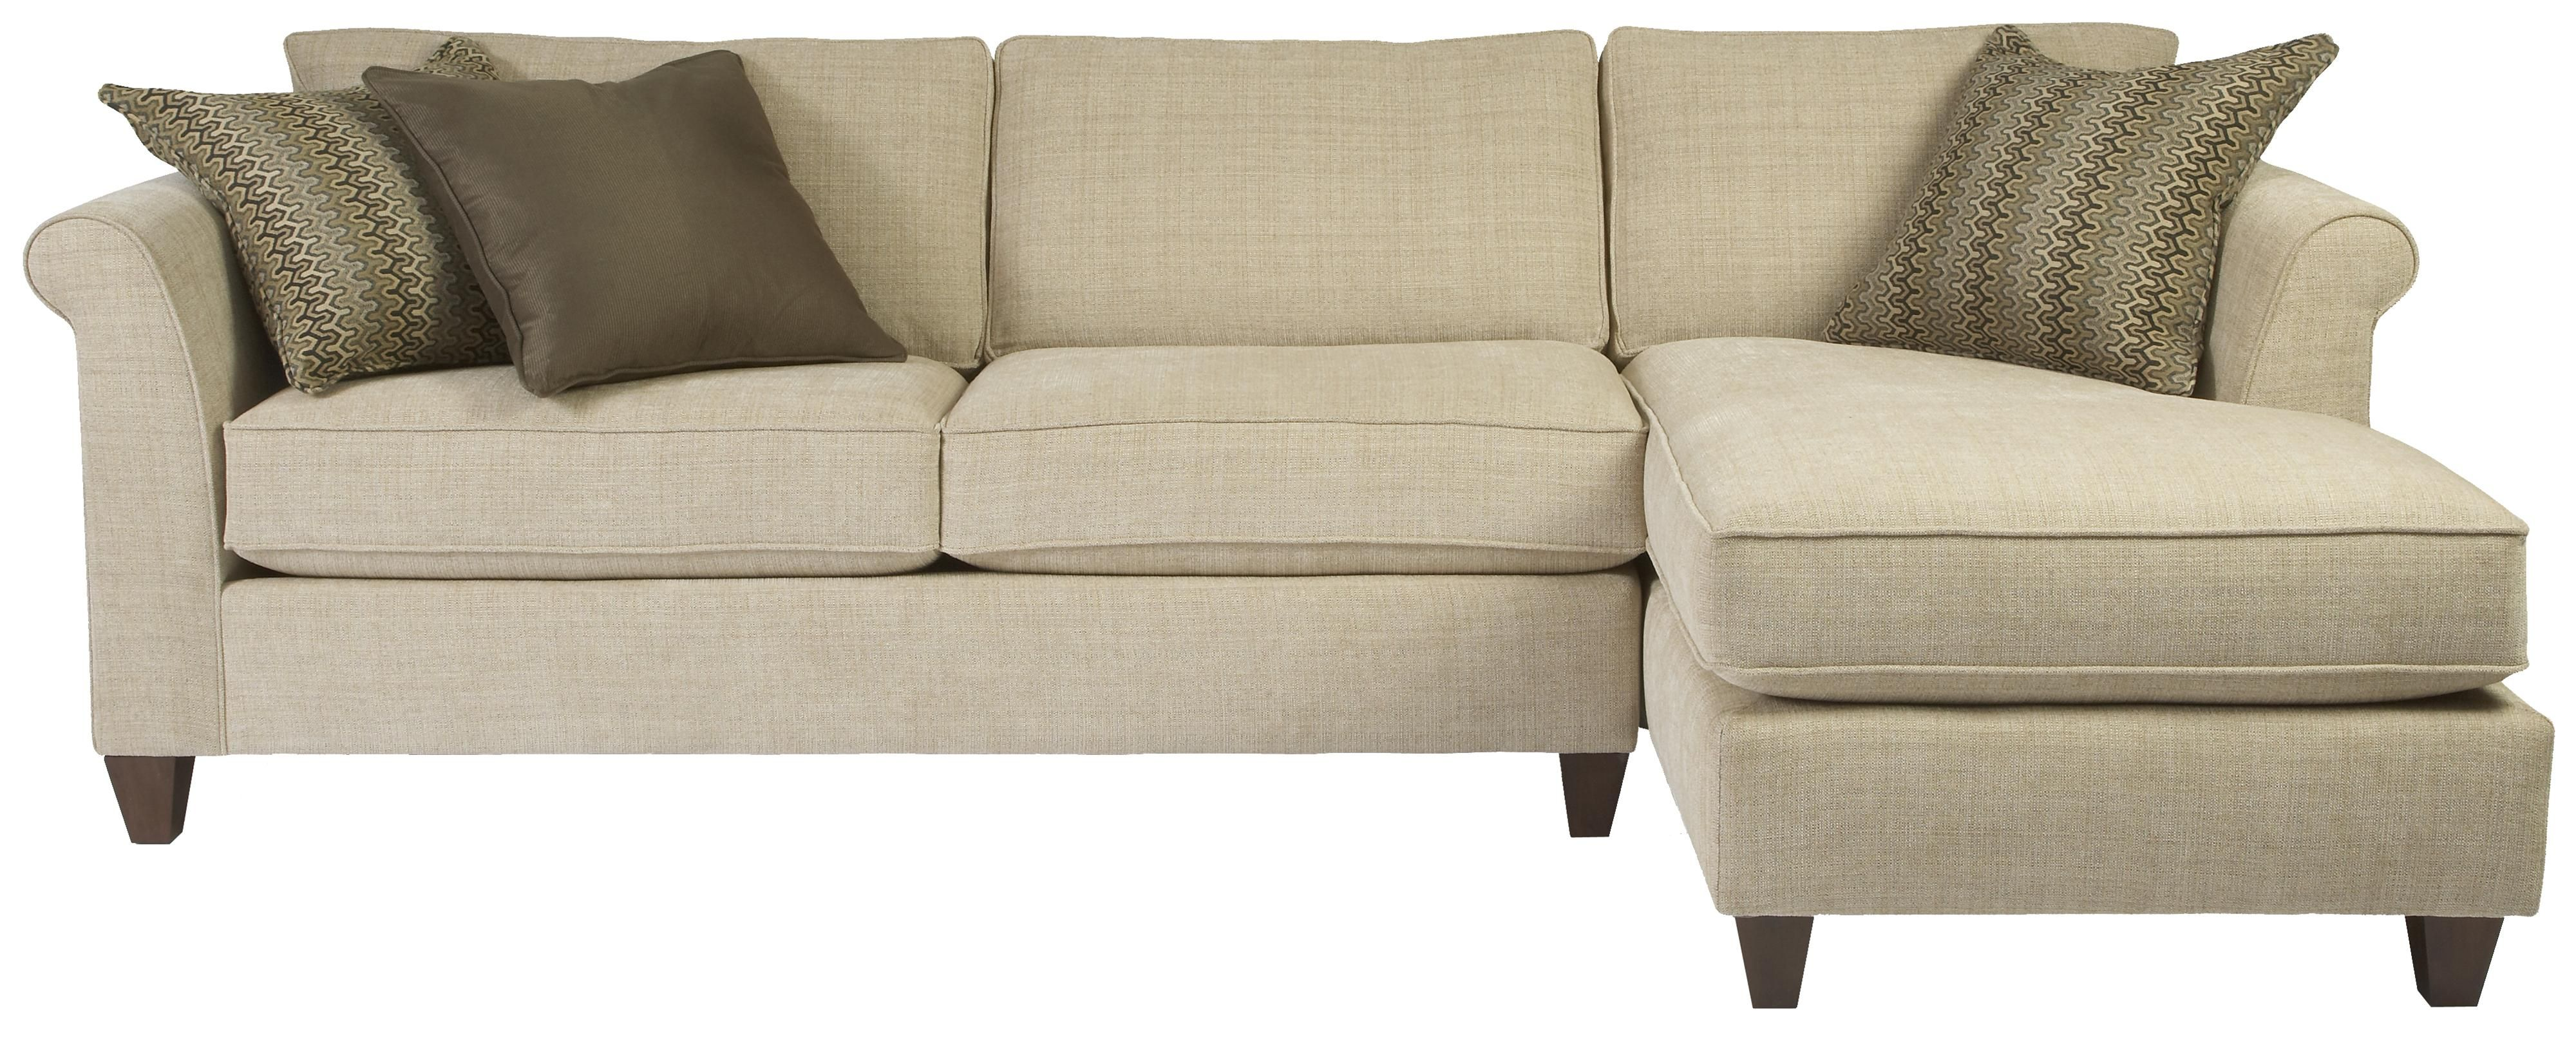 235 Sectional Sofa by Alan White | Sectional sofa with ...